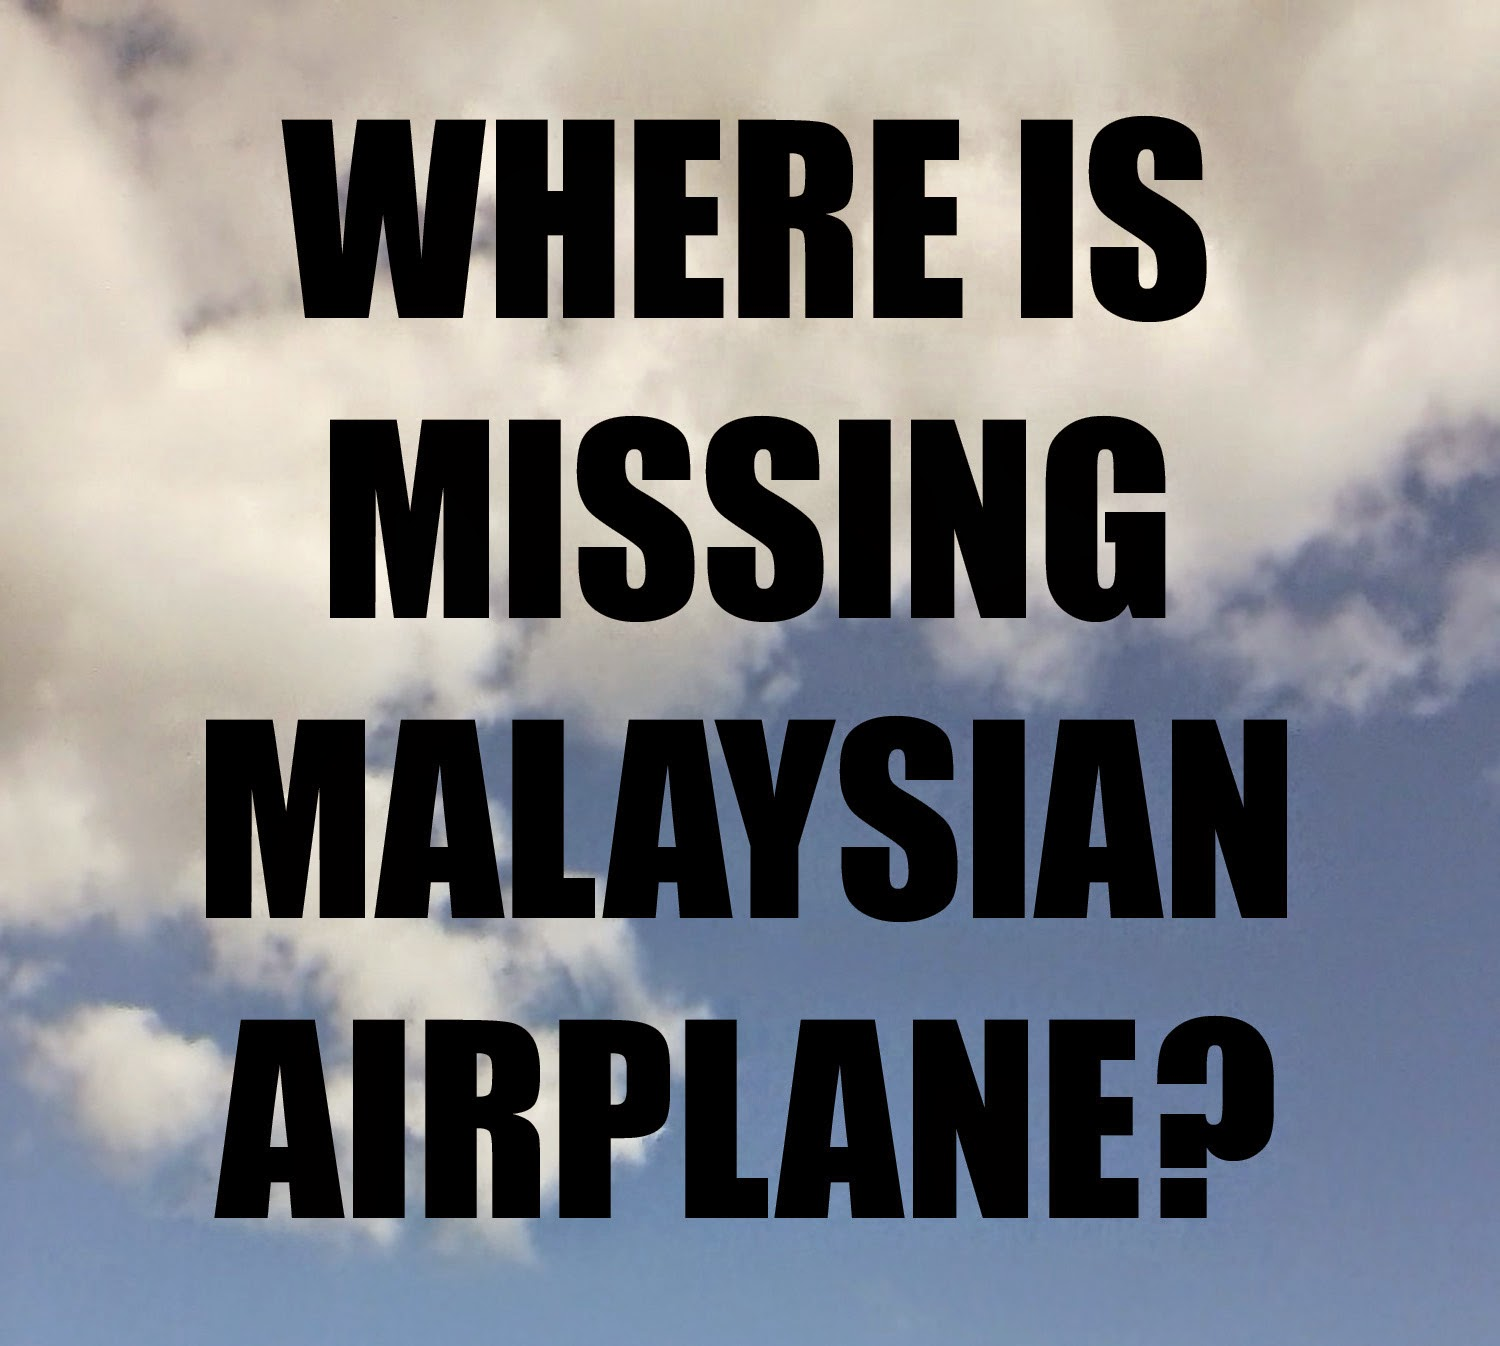 Where is the missing Malaysian plane?